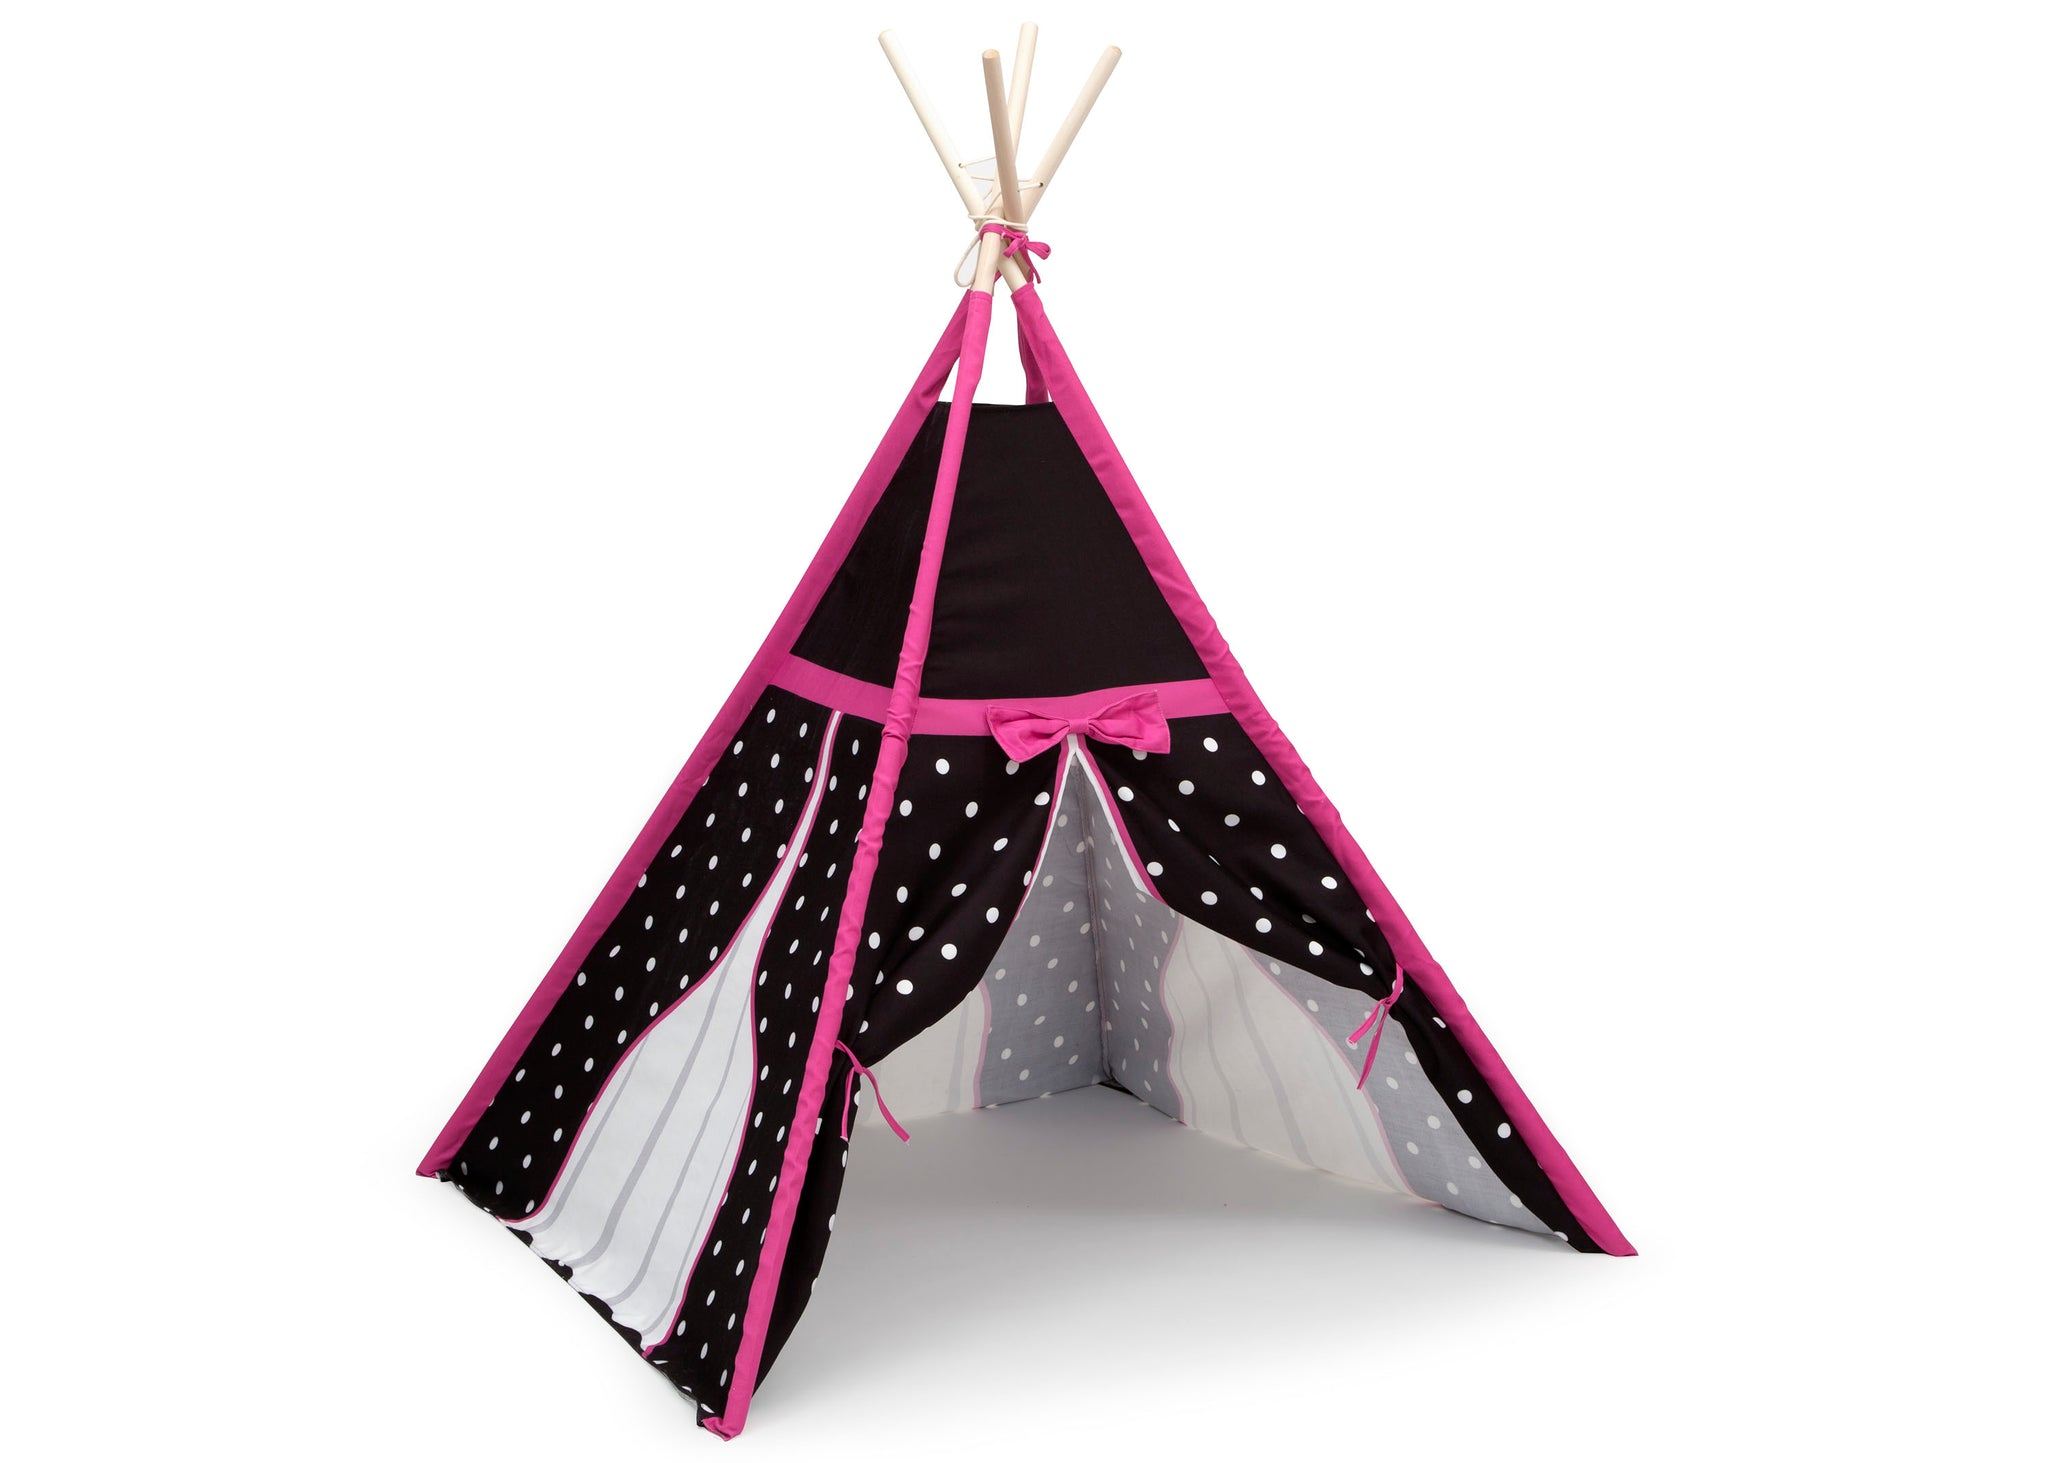 Delta Children Polka Dots and Bows (999) Teepee Play Tent for Kids, Right Silo View